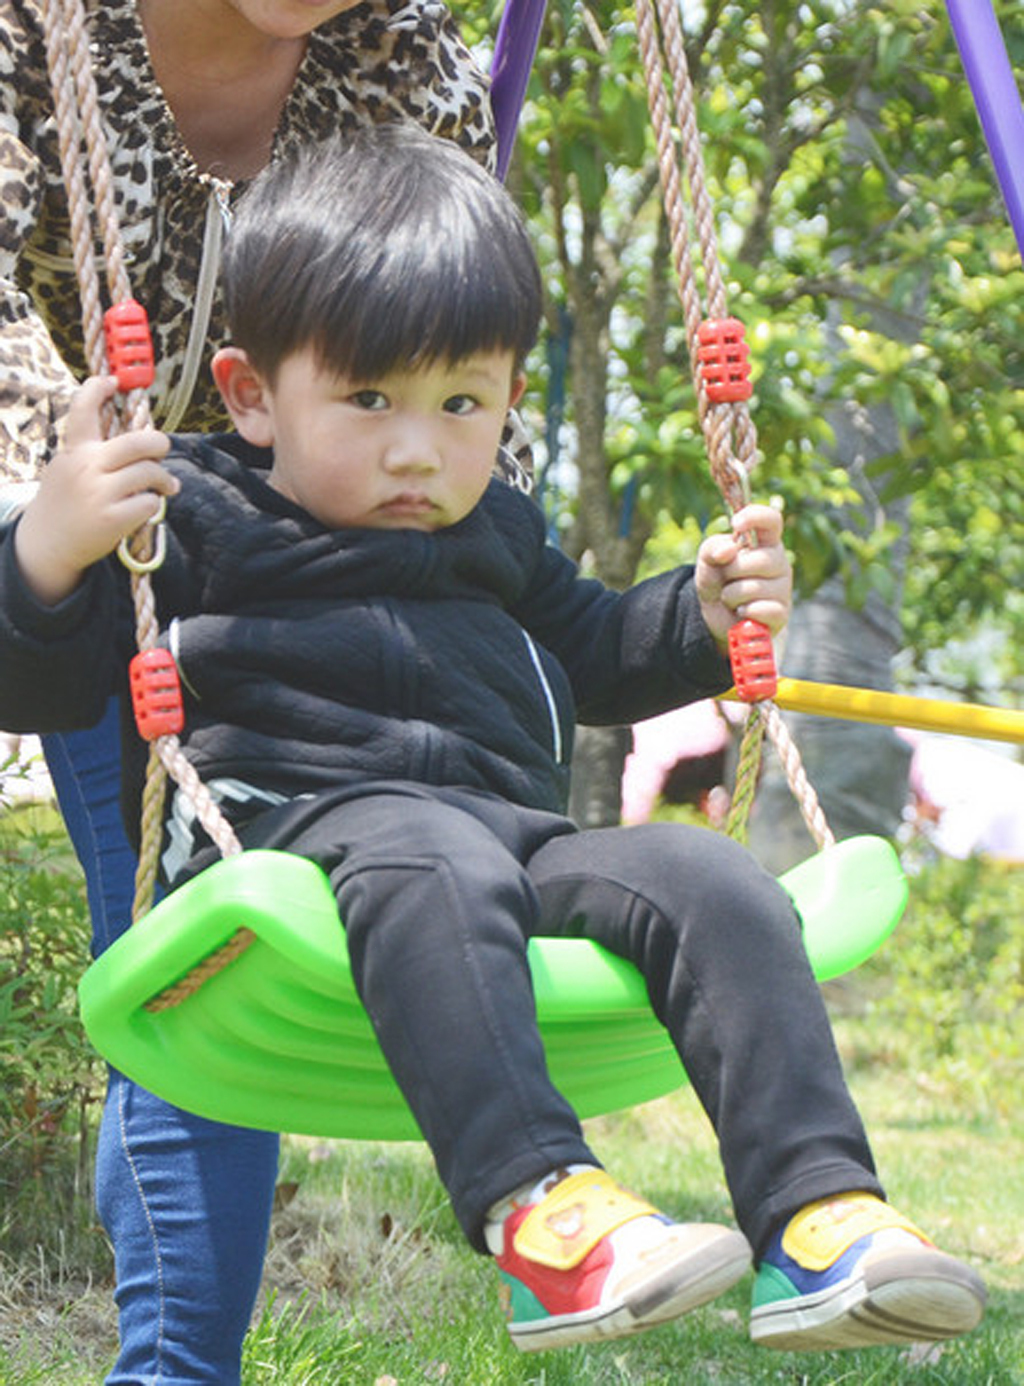 Kids-Adult-Unisex-Durable-Swing-Seat-Set-Accessories-Playground-Outdoor-Play-Fun miniatuur 13